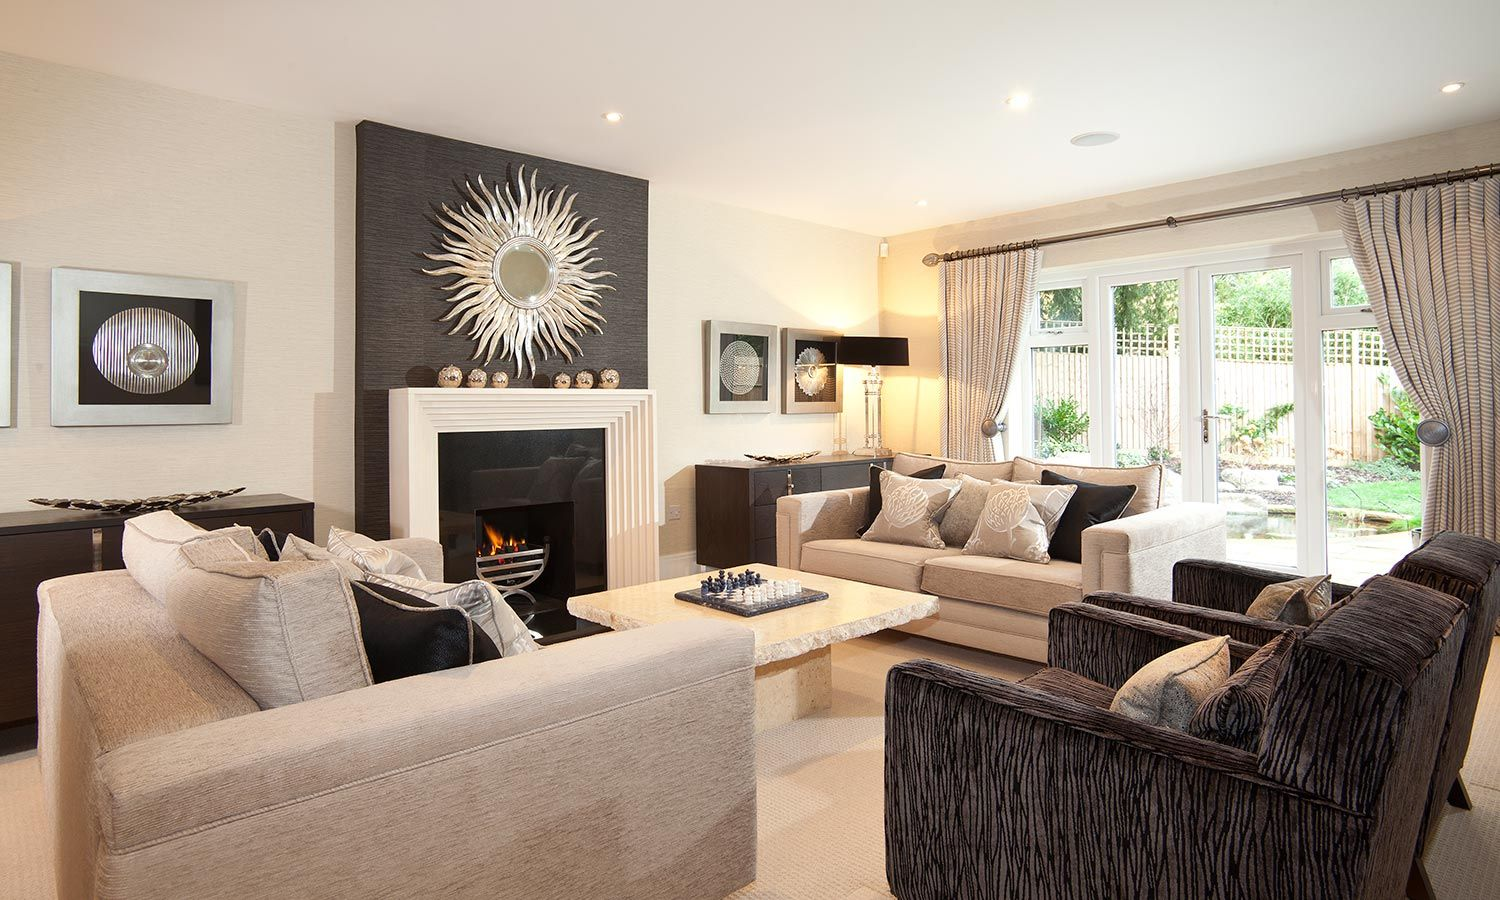 Designer Touches Surrey Uk Gallery 2 Formal Living Room Decor